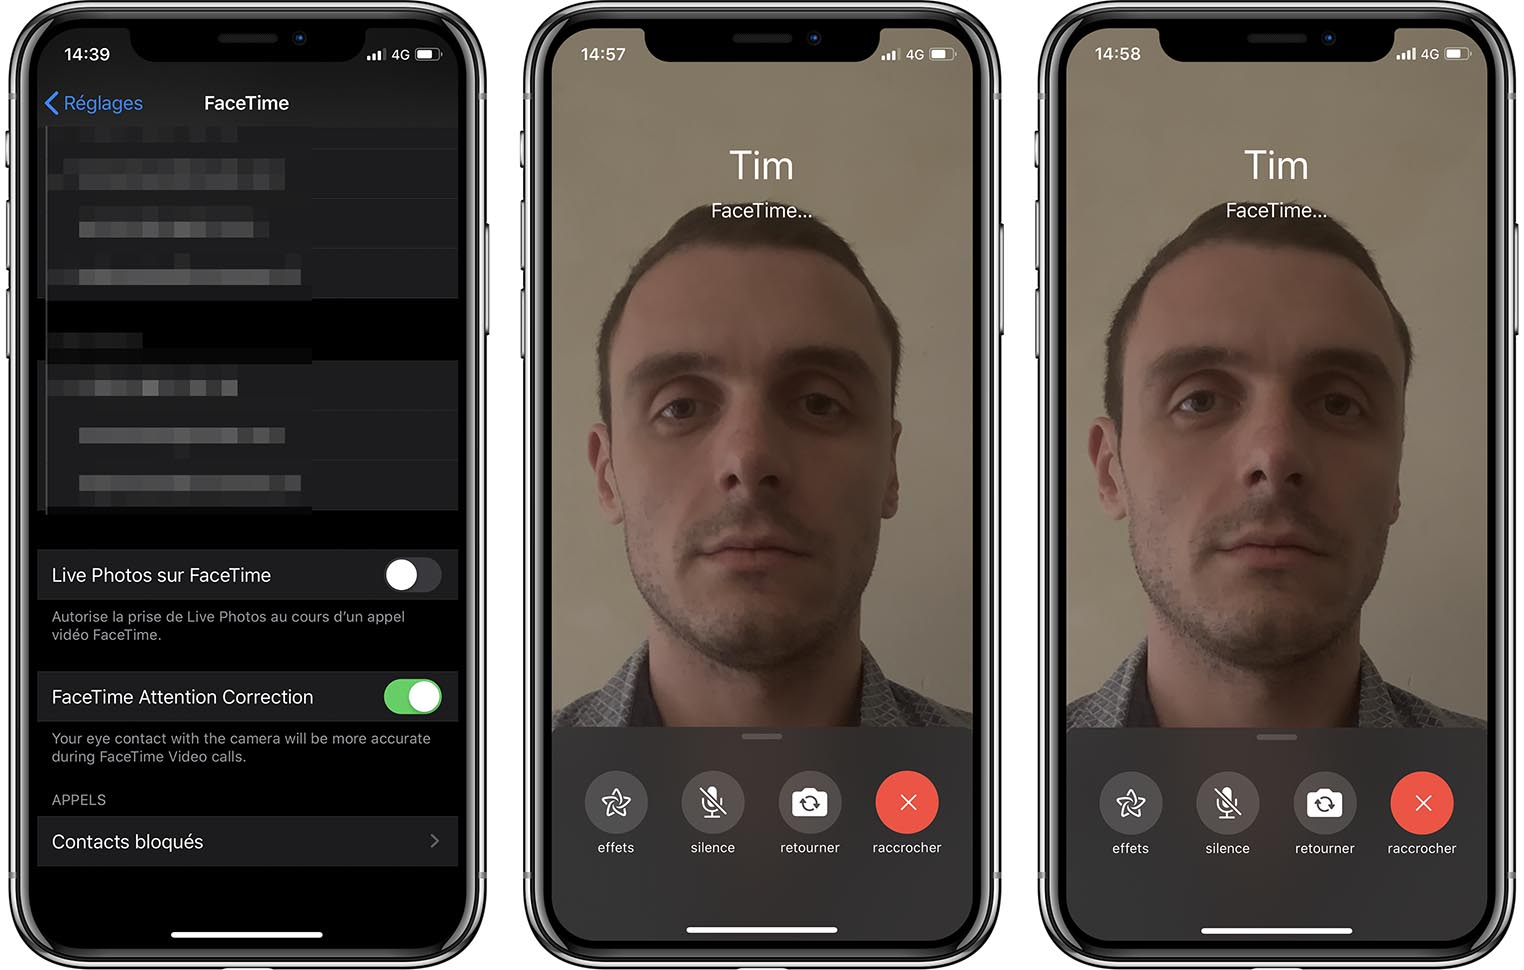 iOS 13 FaceTime Attention Correction